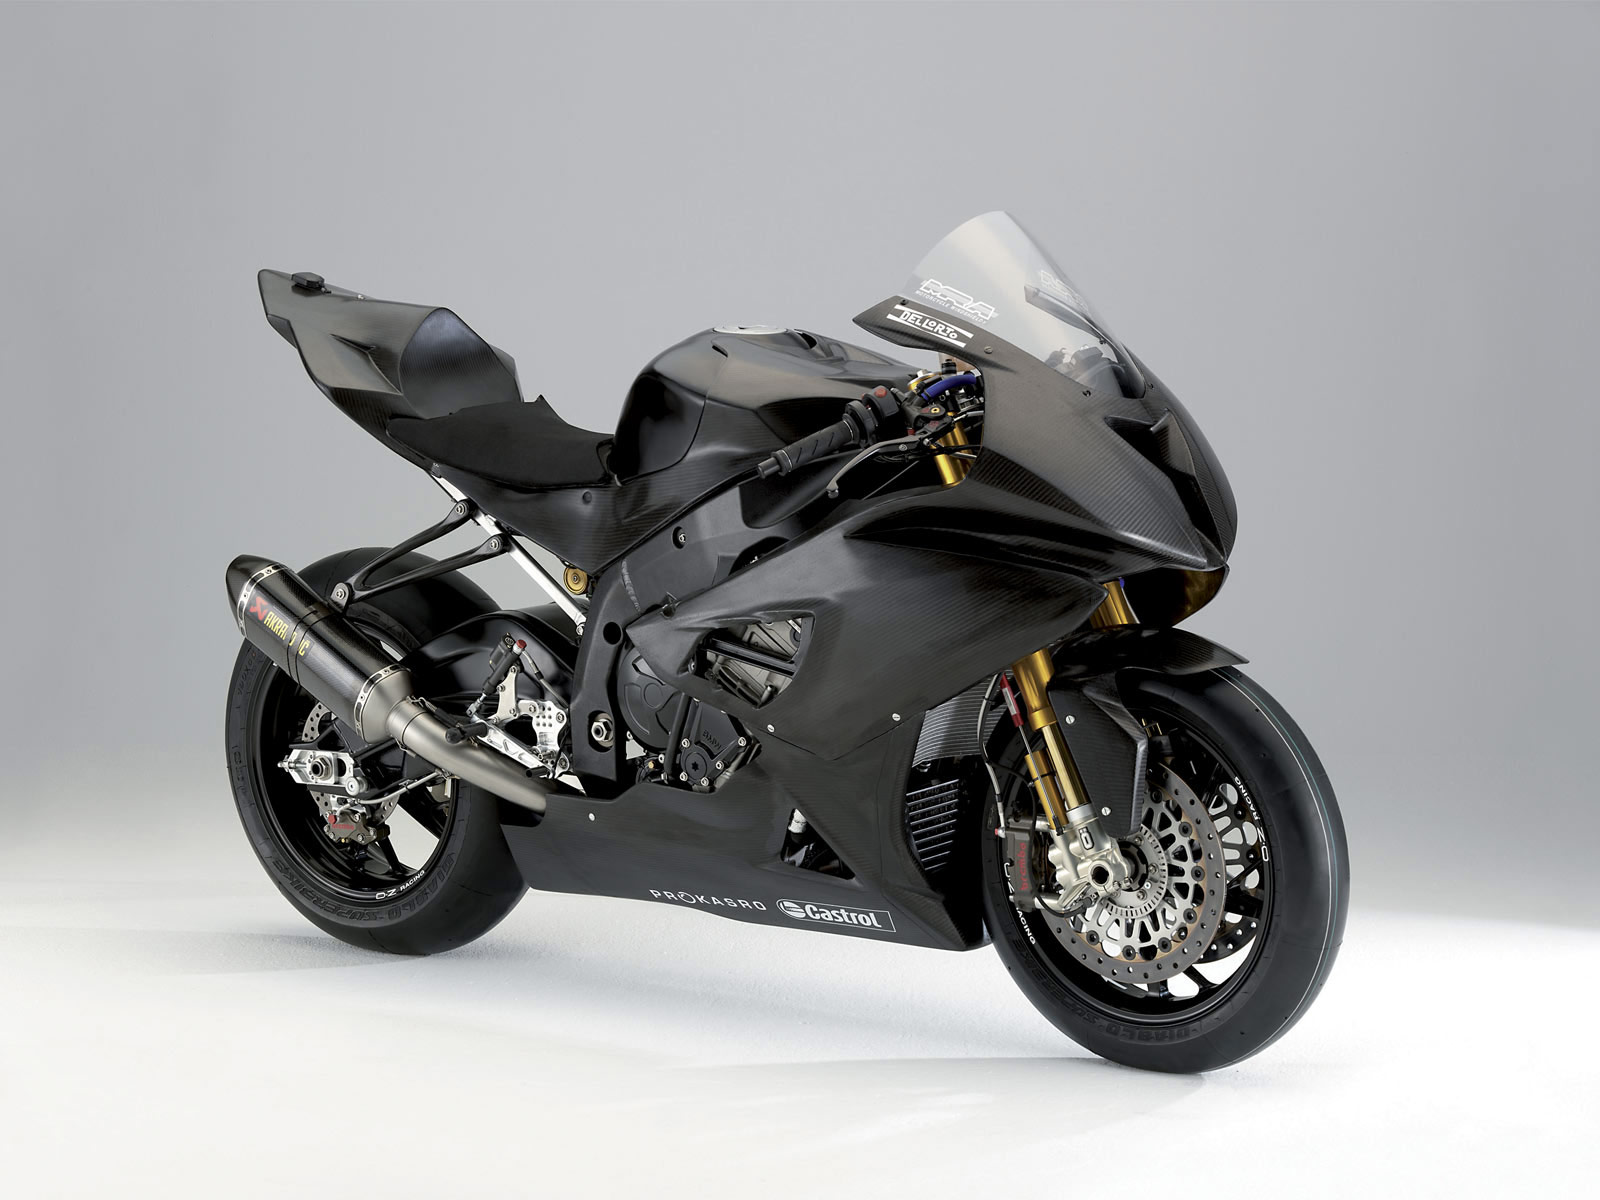 2009 Bmw S1000rr Insurance Information Wallpapers